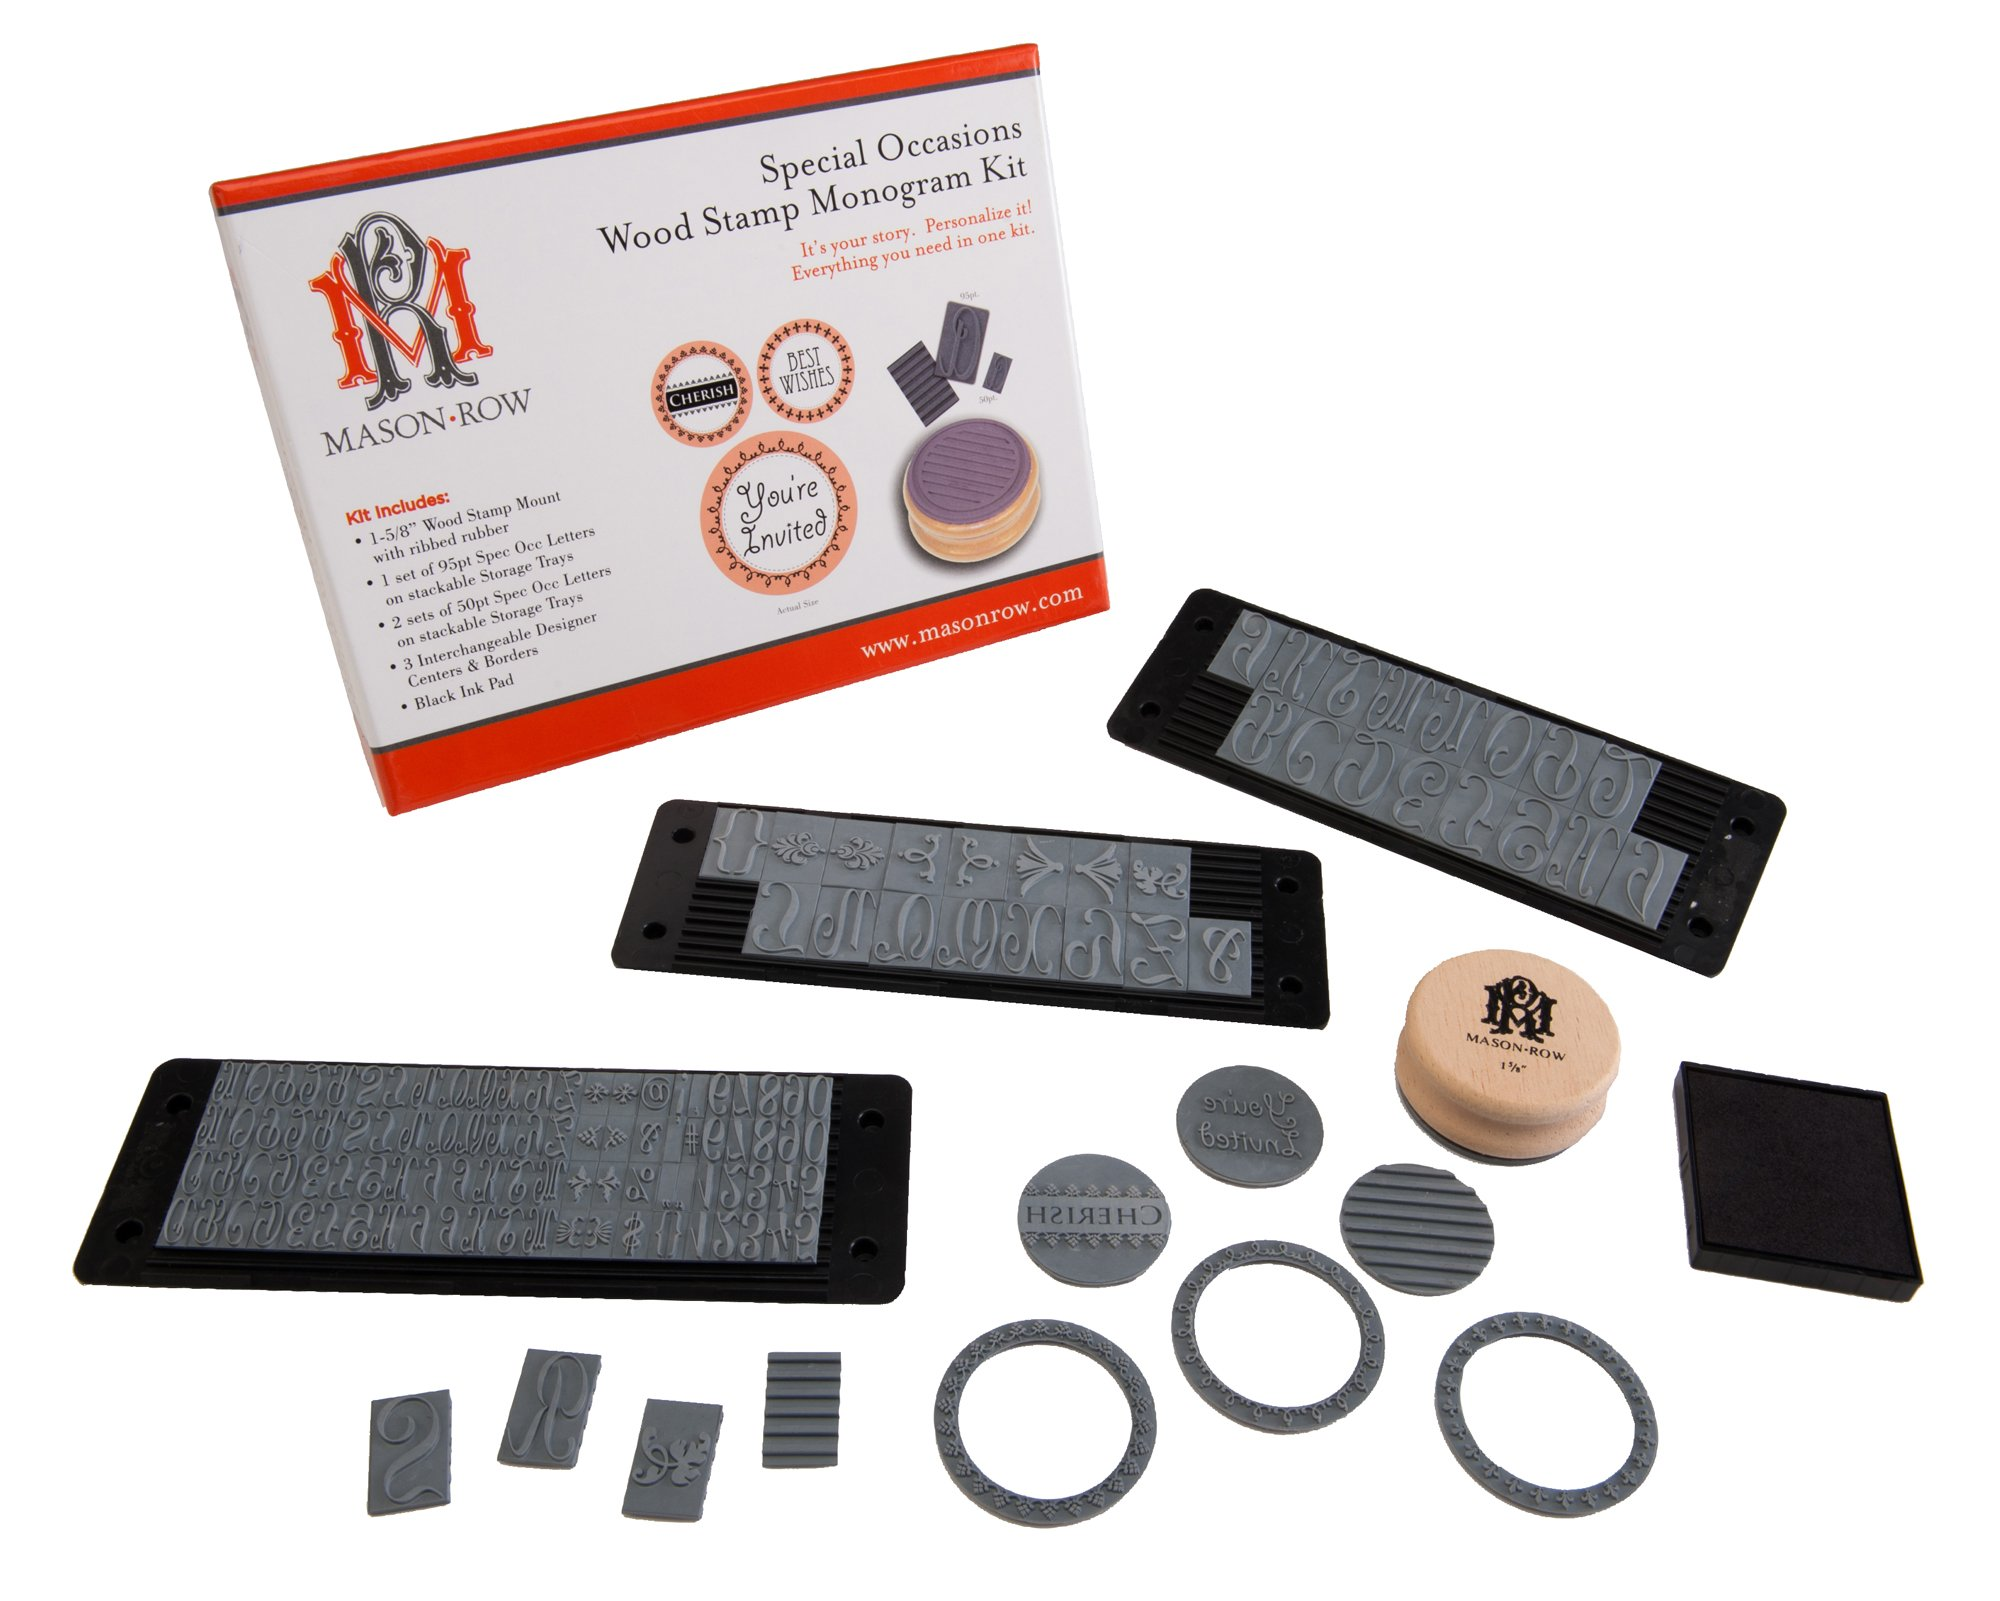 Mason Row XL-48877 Special Occasions Wood Mount Monogram Stamp Kit by Mason Row